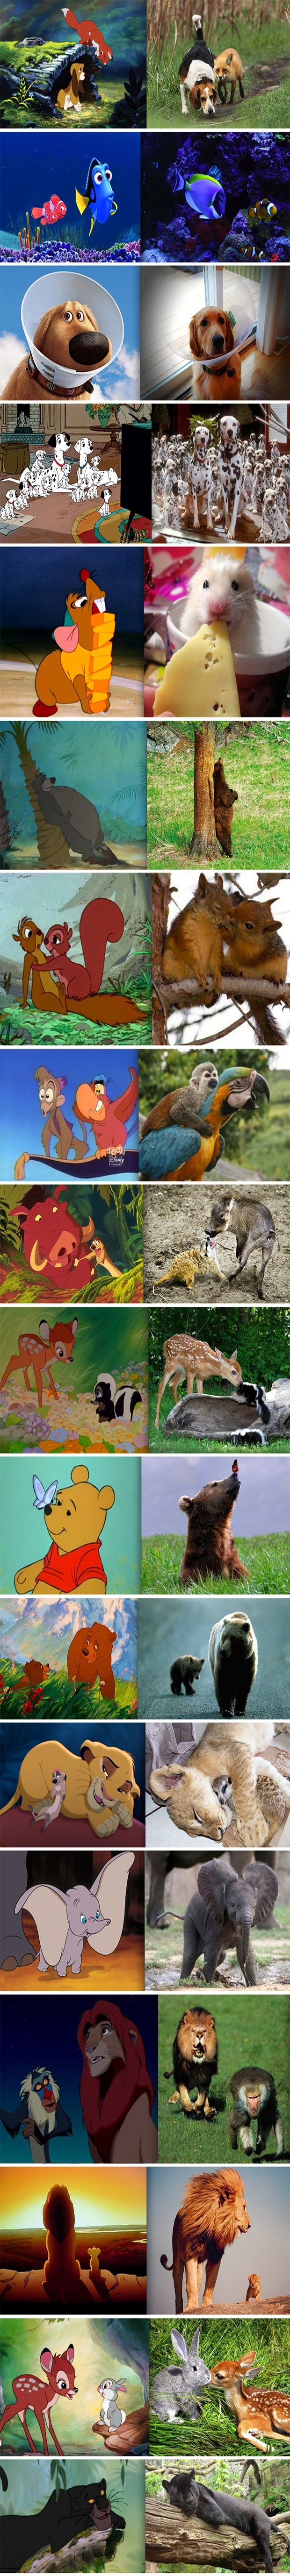 Cartoon/real of Disney scenes happened real life this is what they would look like